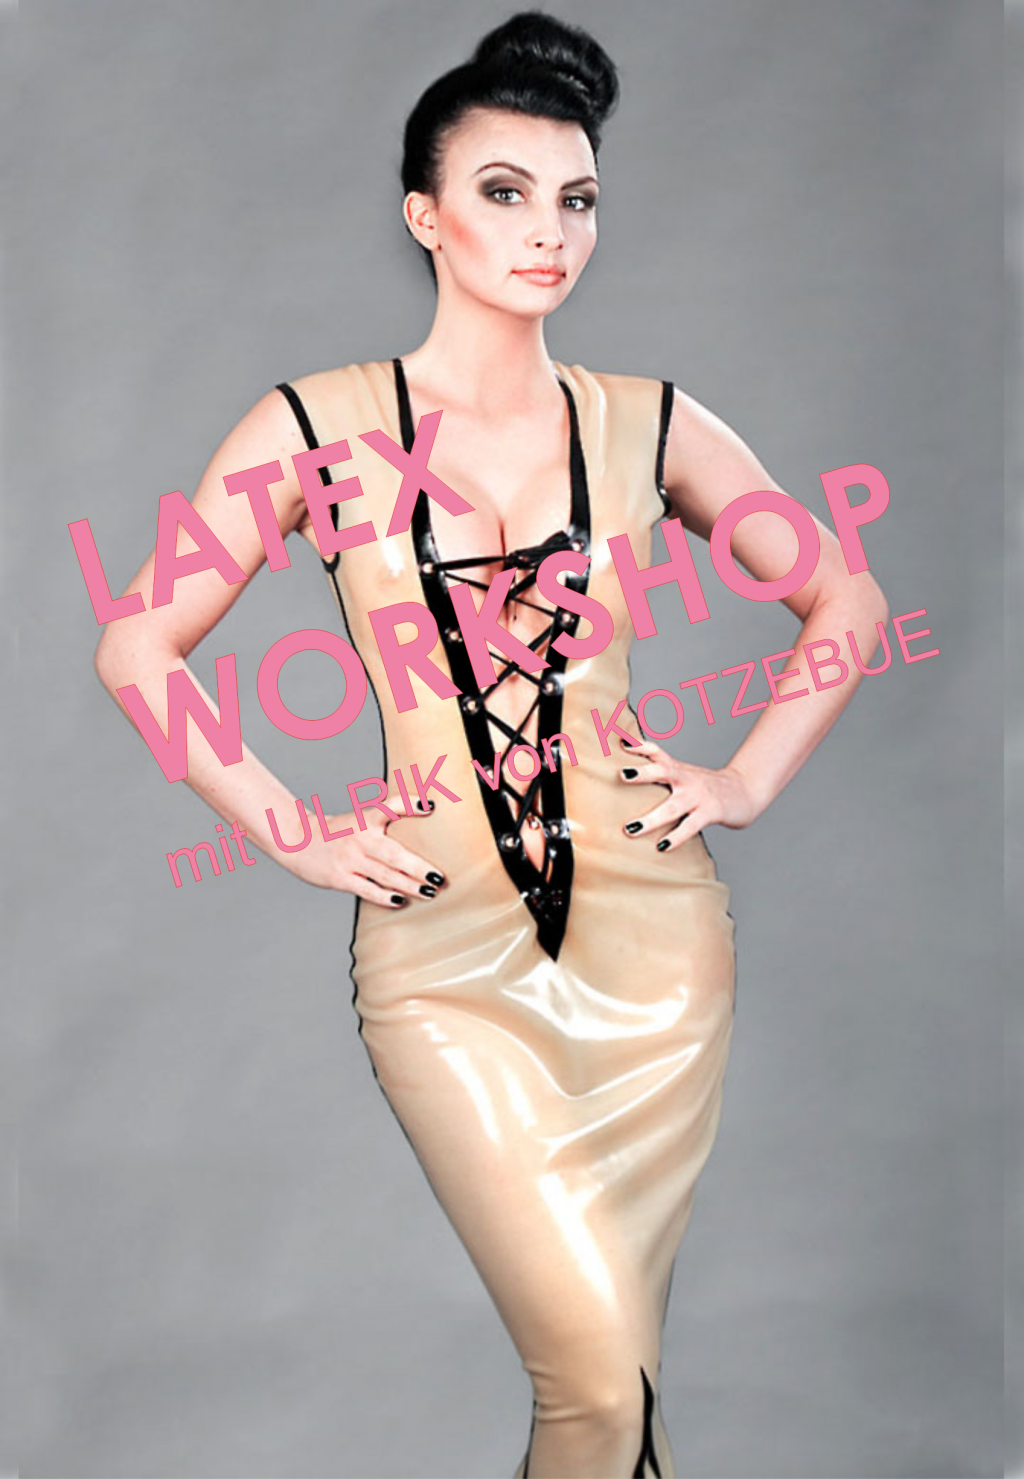 Latex-WORKSHOP bis 31.01.2019 Sonderpreis ab 79,- €